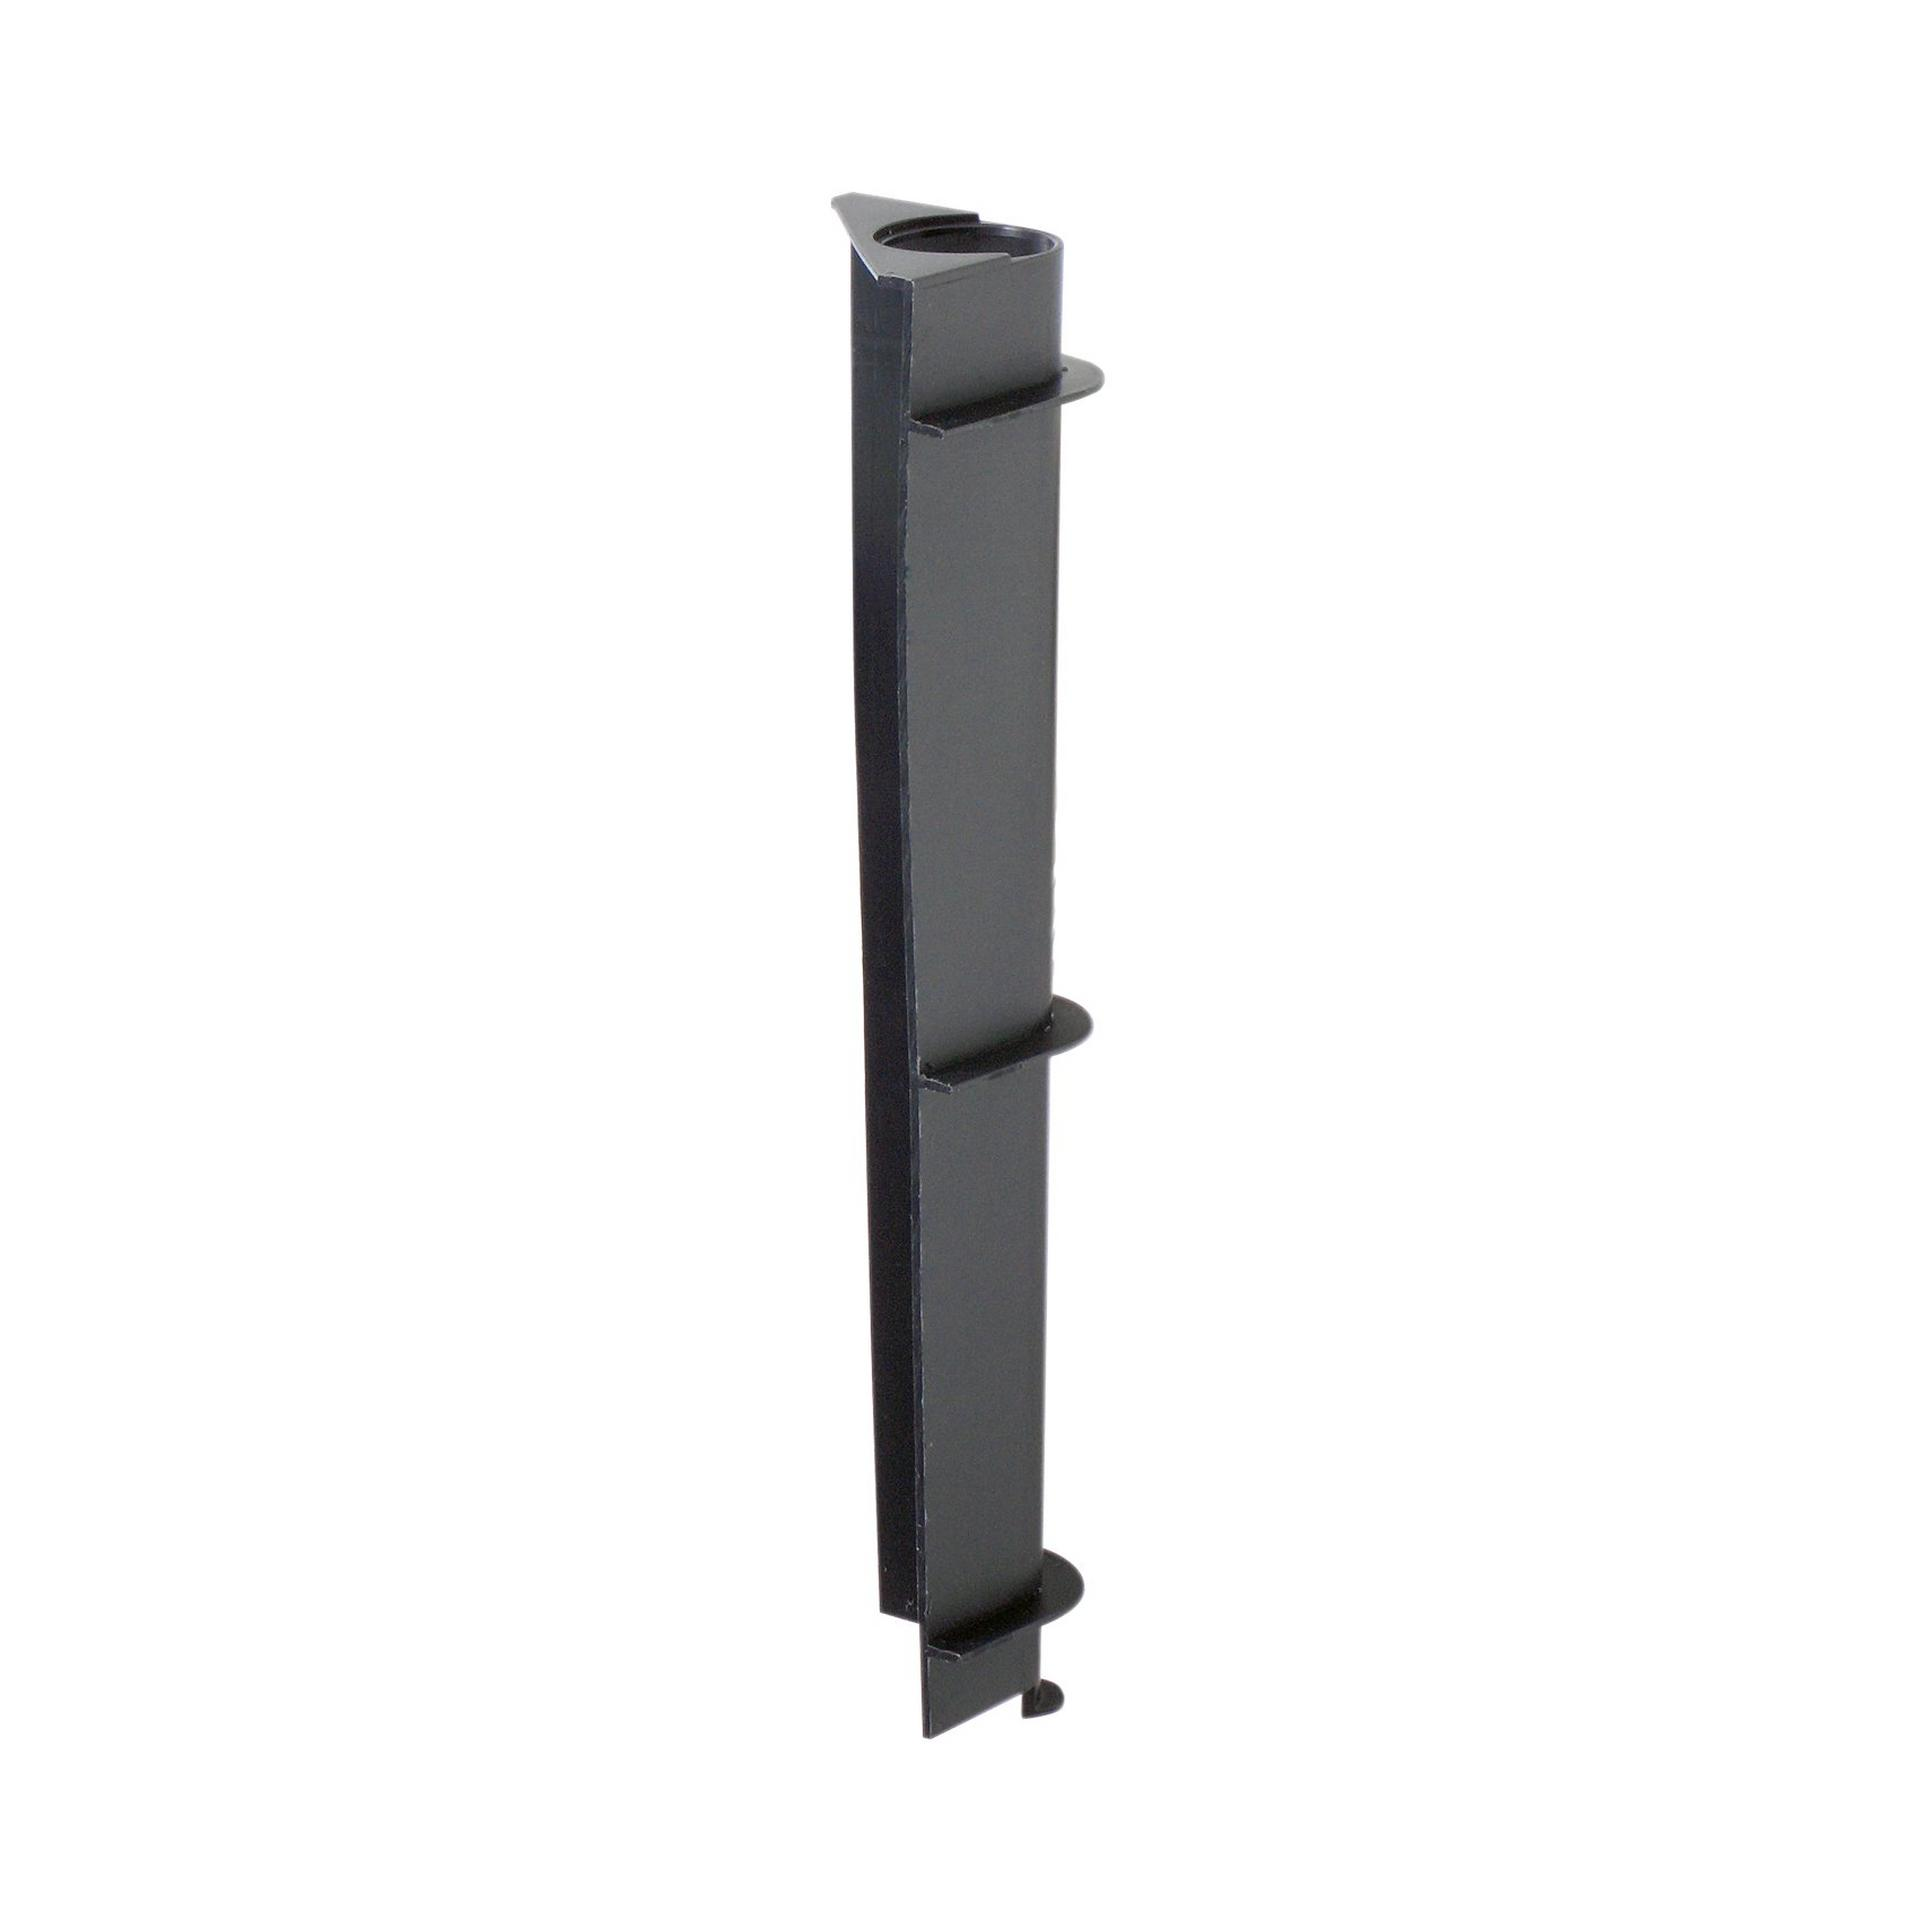 Water supply shaft for CUBICO 40 | CUBICO ALTO | CUBE 40 | CANTO 40 | TRIO 40